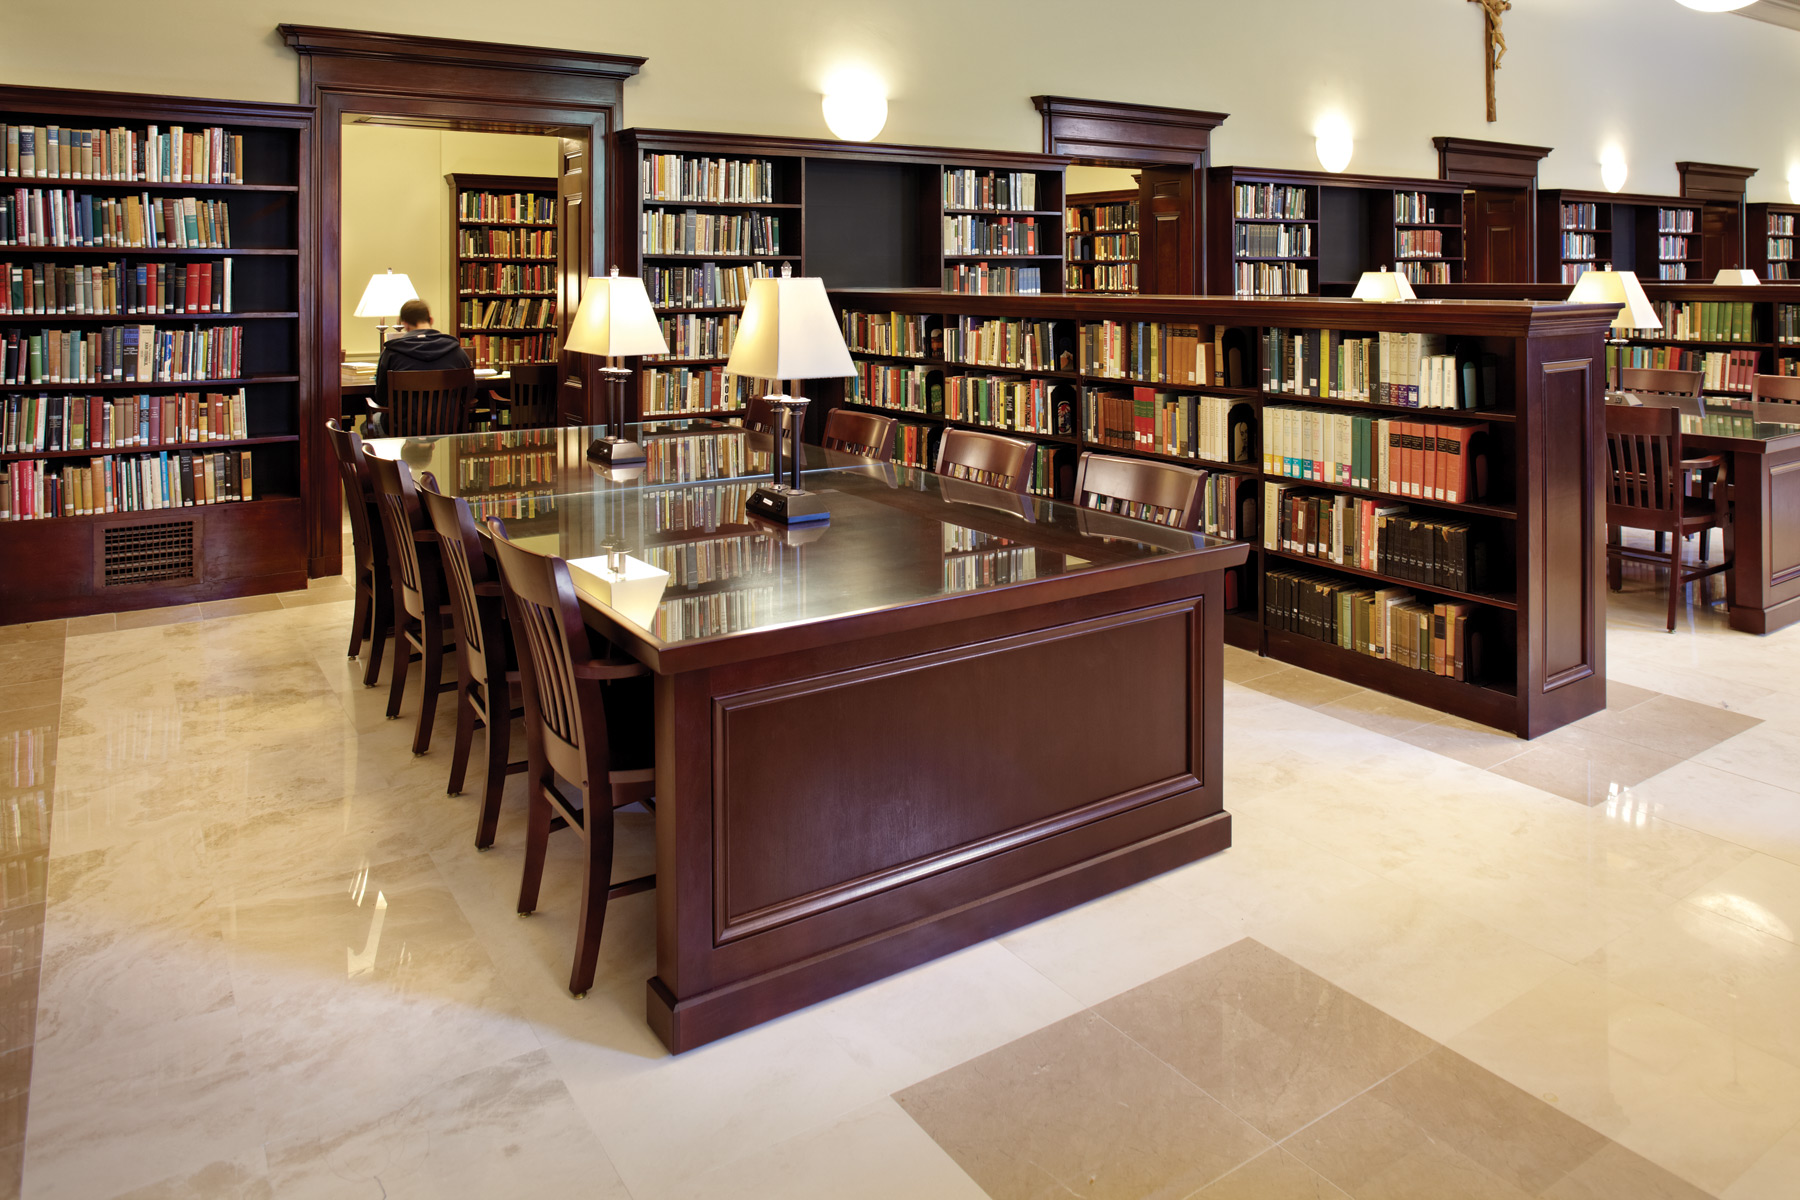 Iona College, Ryan Library